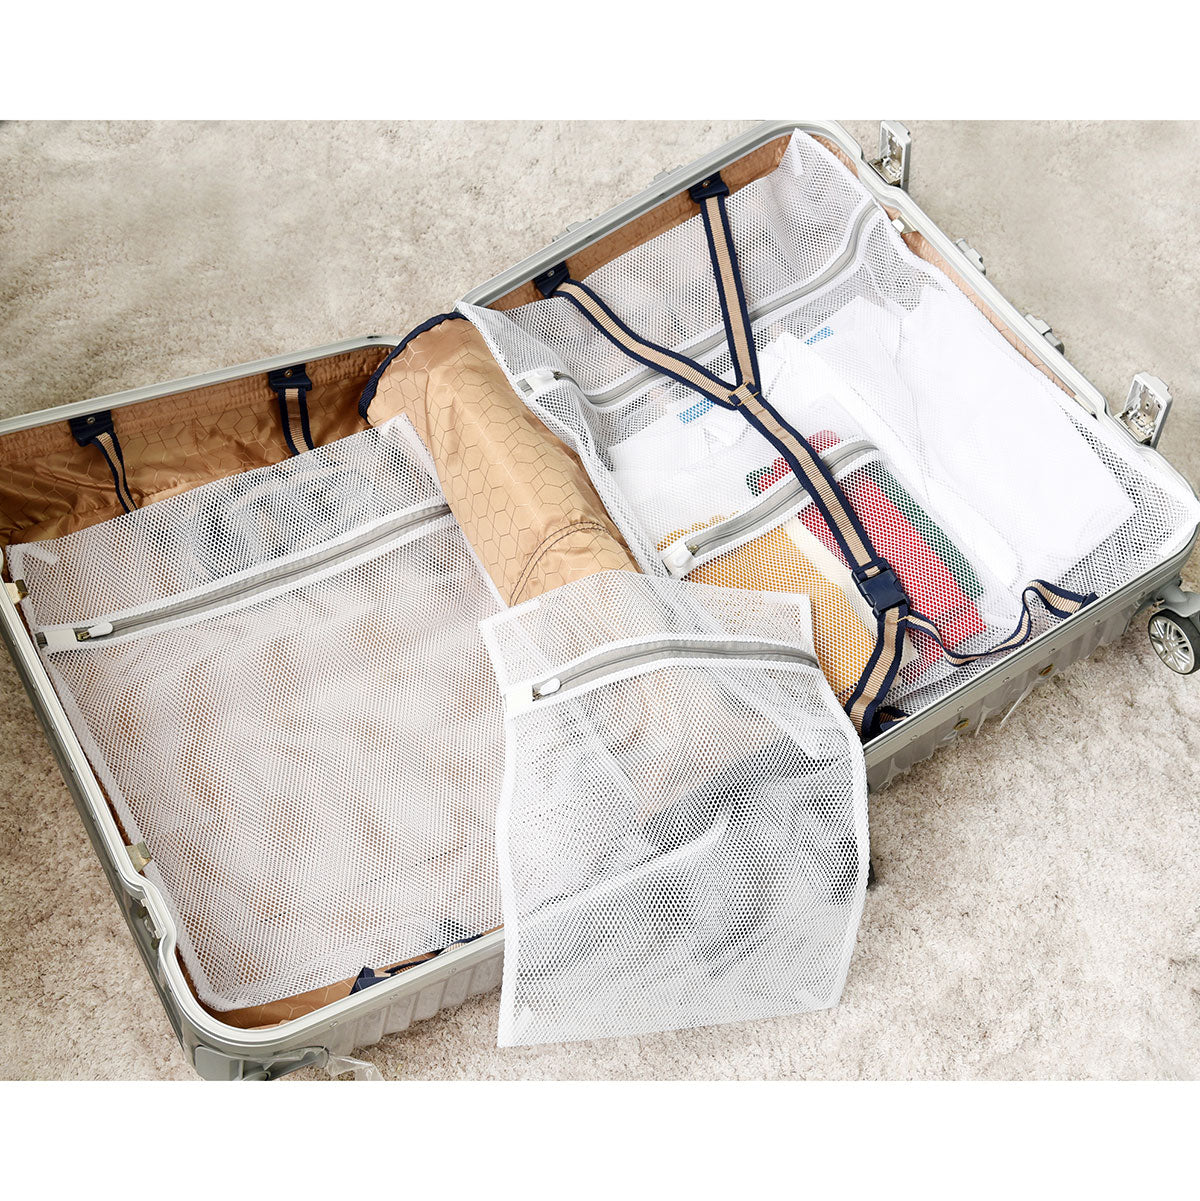 Gray Coarse Mesh Laundry Bags with Zippers 4 Pieces